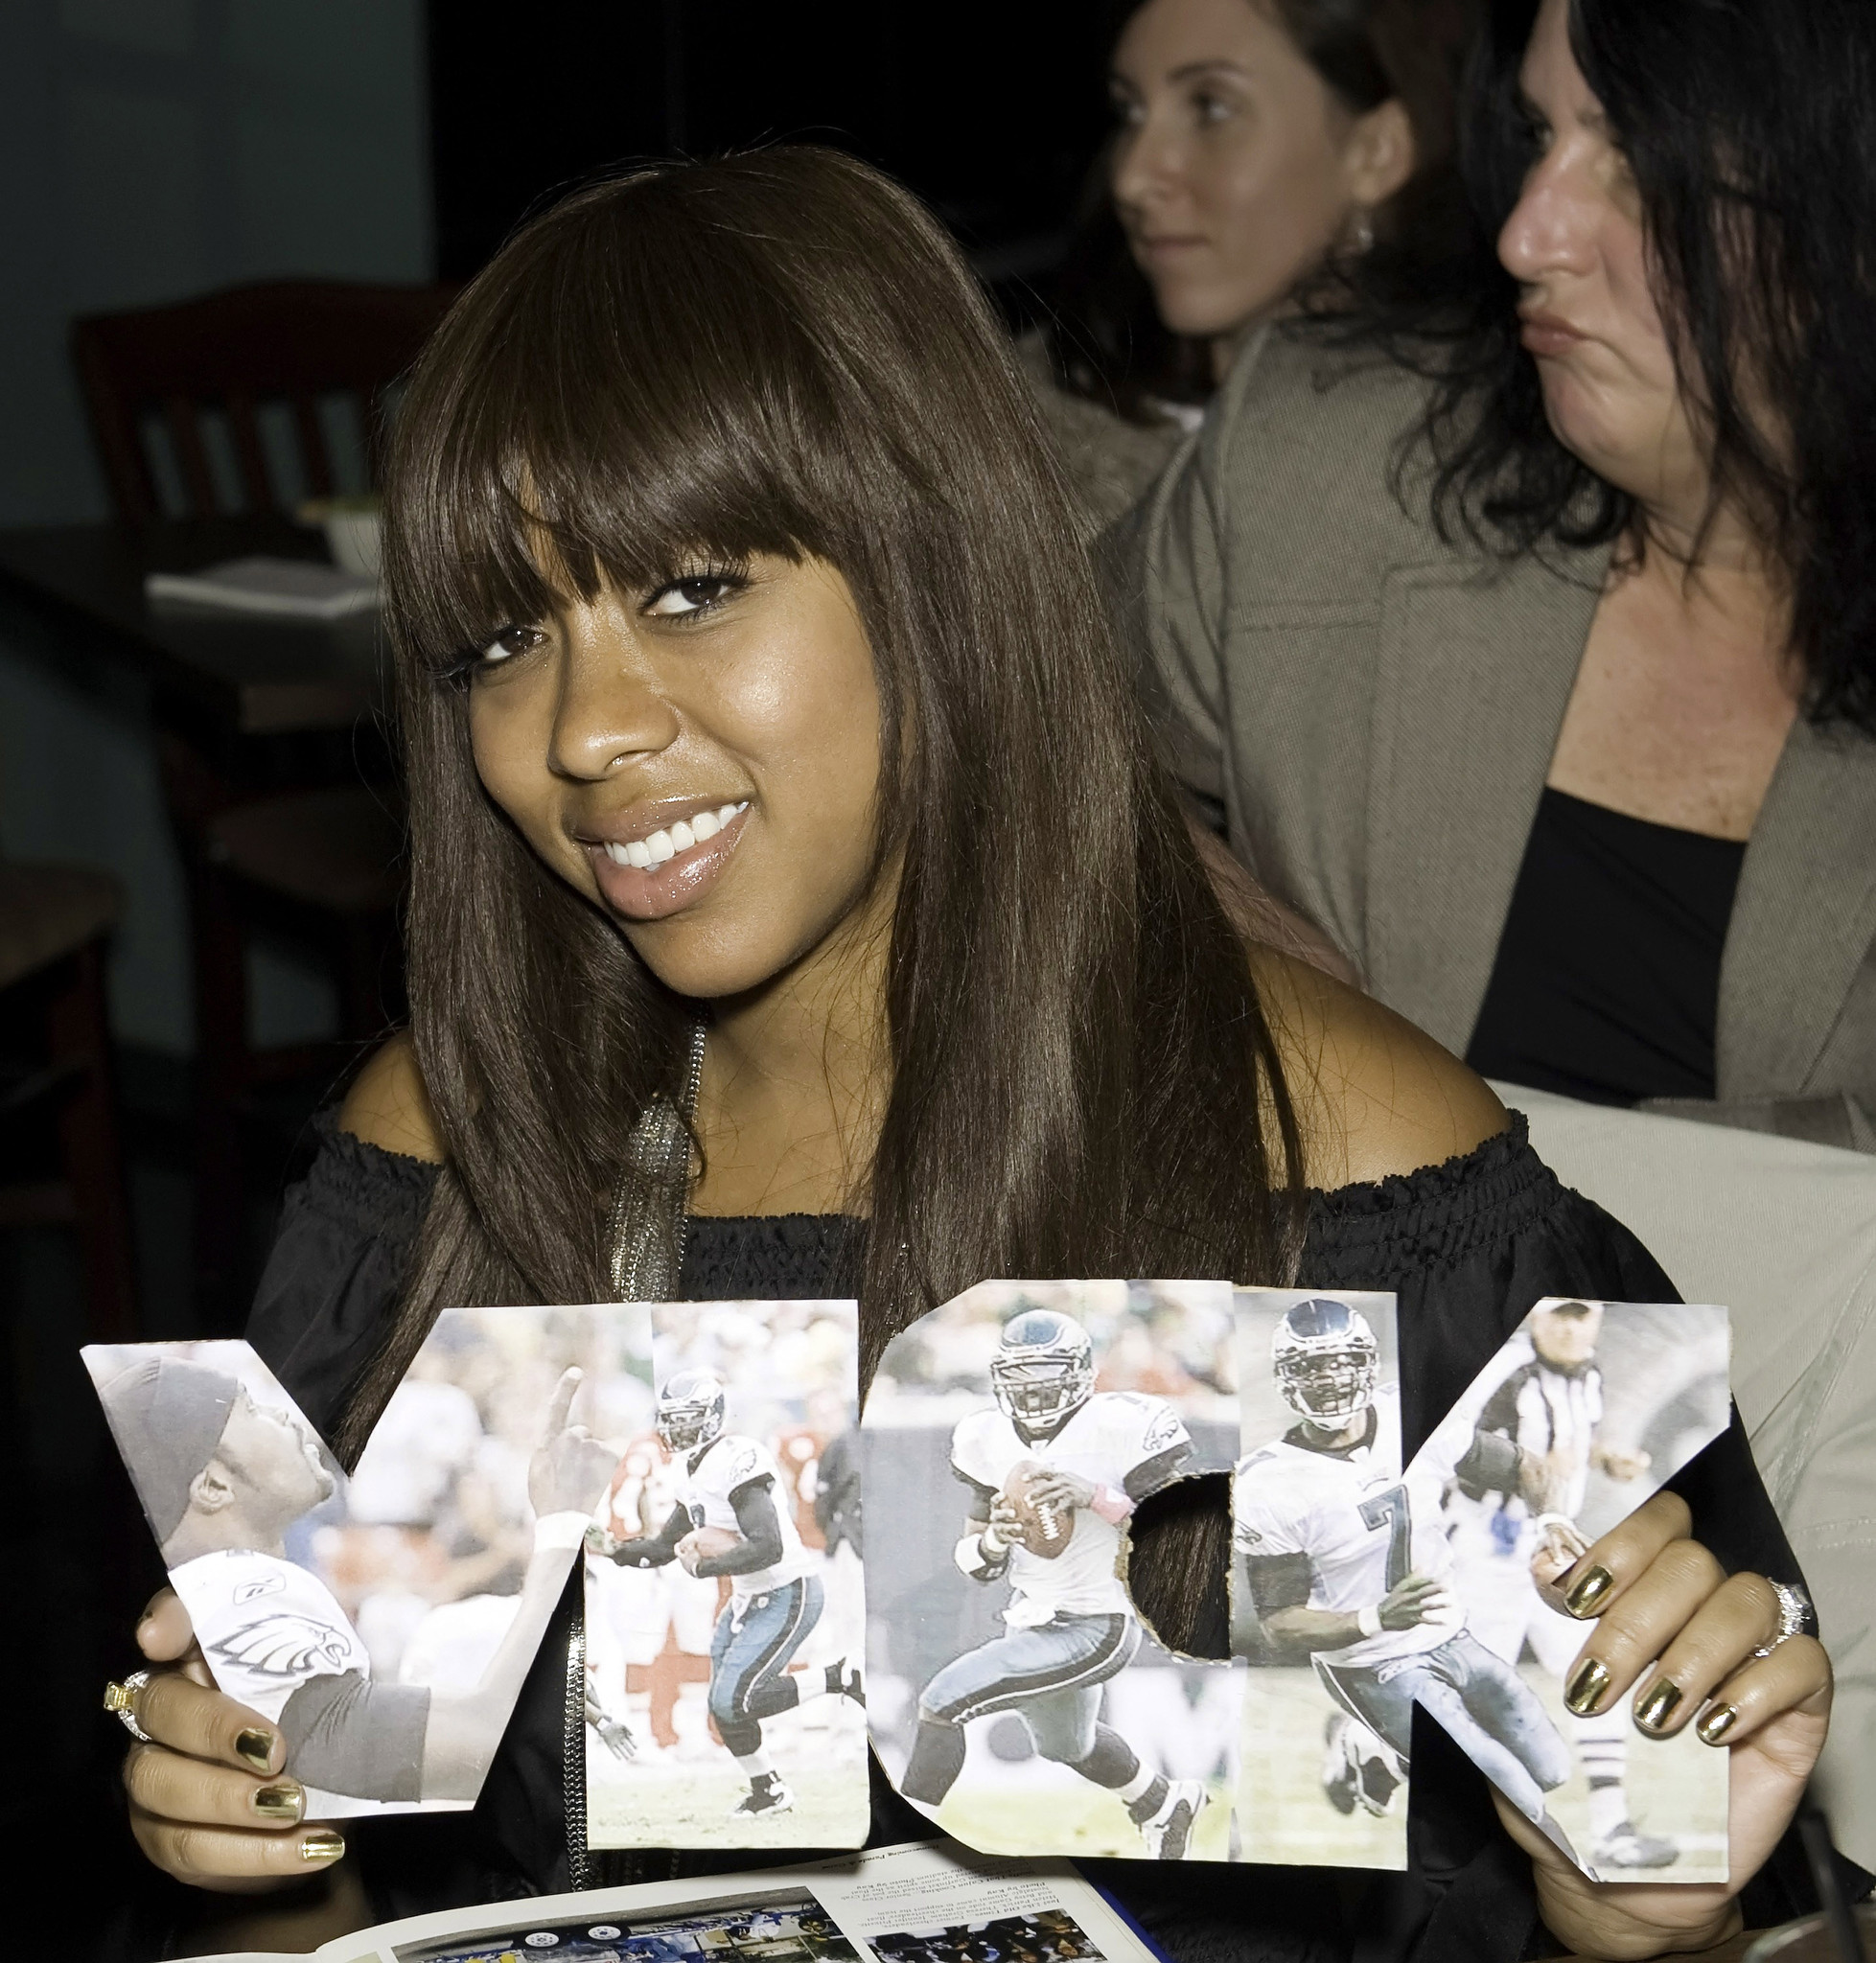 Philadelphia Eagles quarterback Michael Vick's fiancee Kijafa Frink holds up pictures of her husband to be.